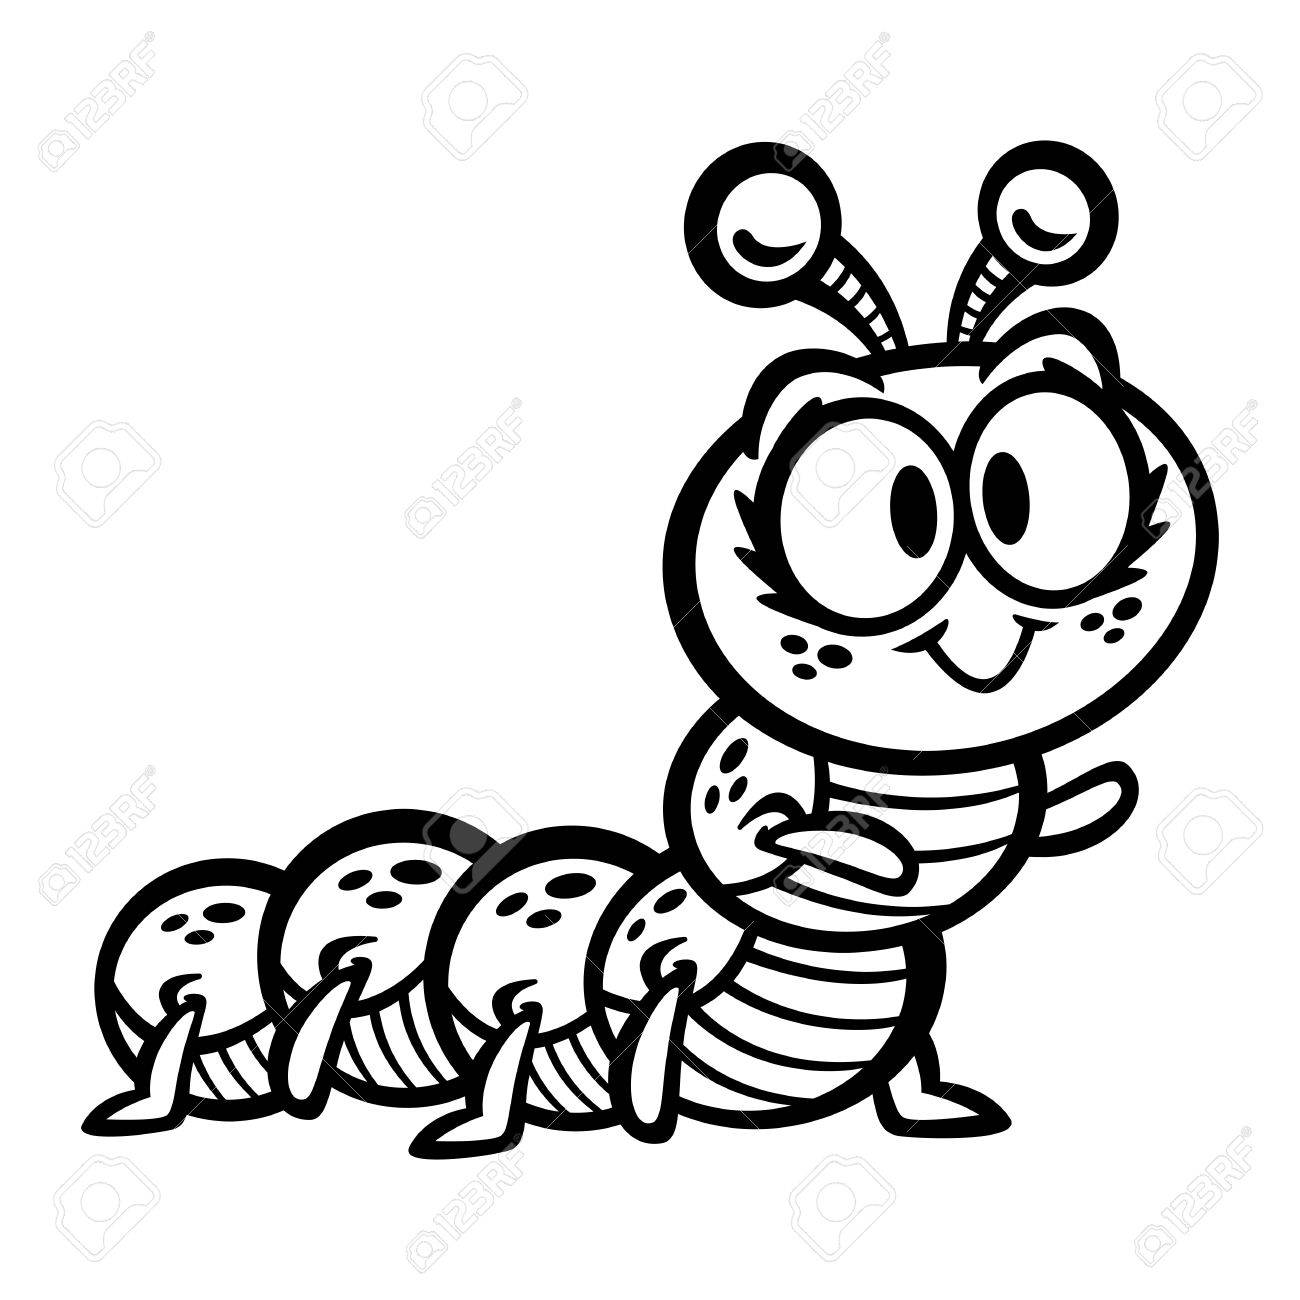 1300x1300 Cute Crawling Caterpillar Bug Cartoon Vector Royalty Free Cliparts